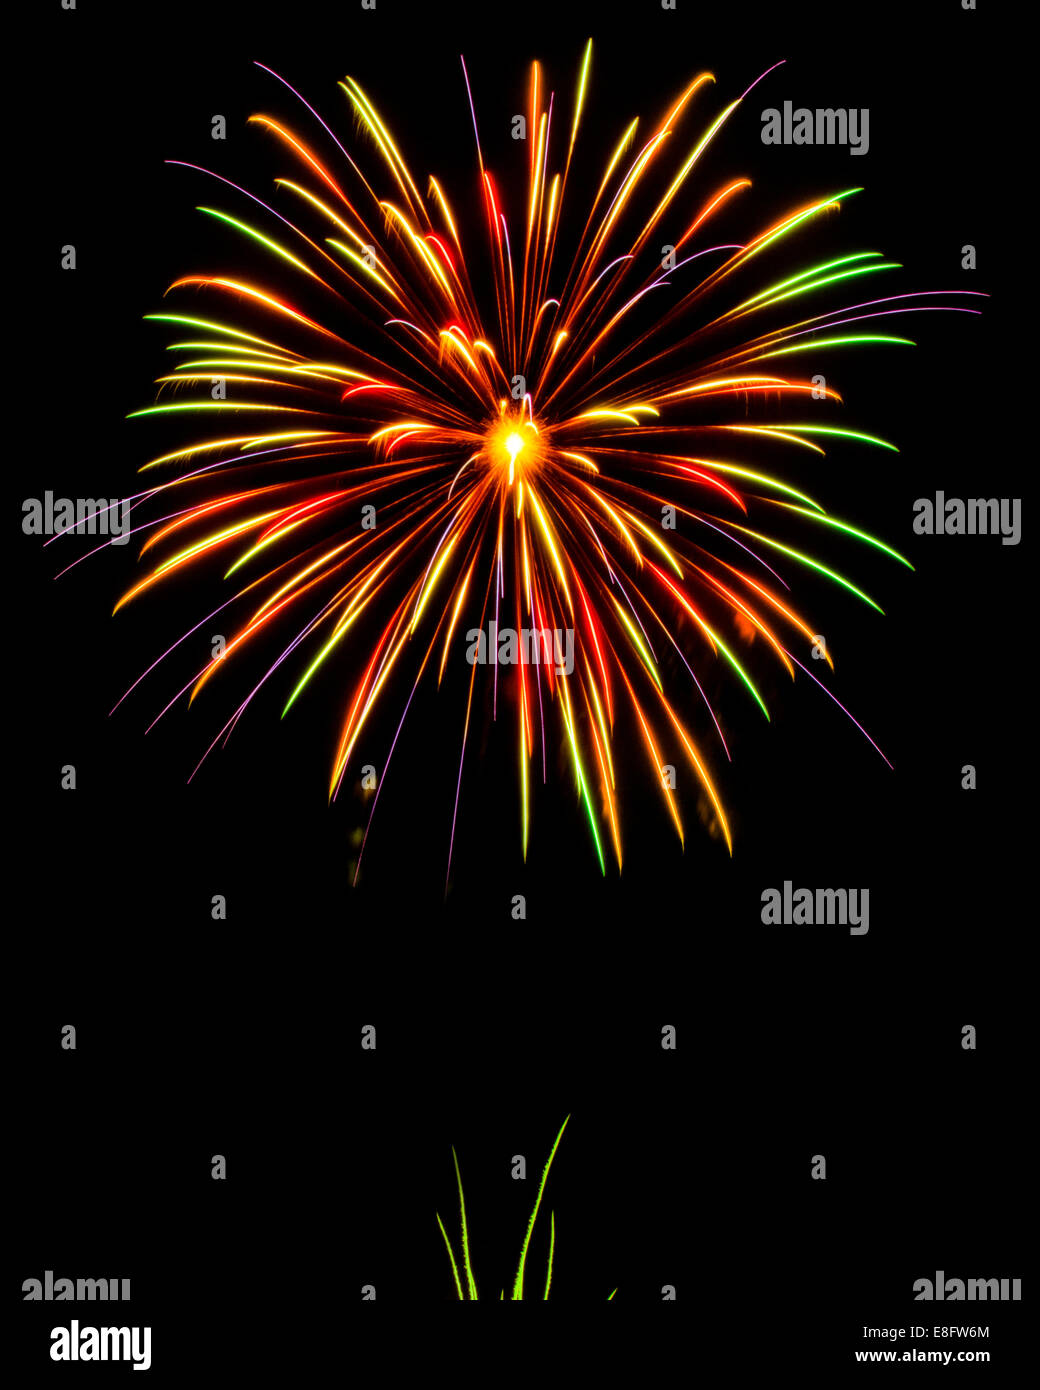 USA, Firework display during Forth of July - Stock Image